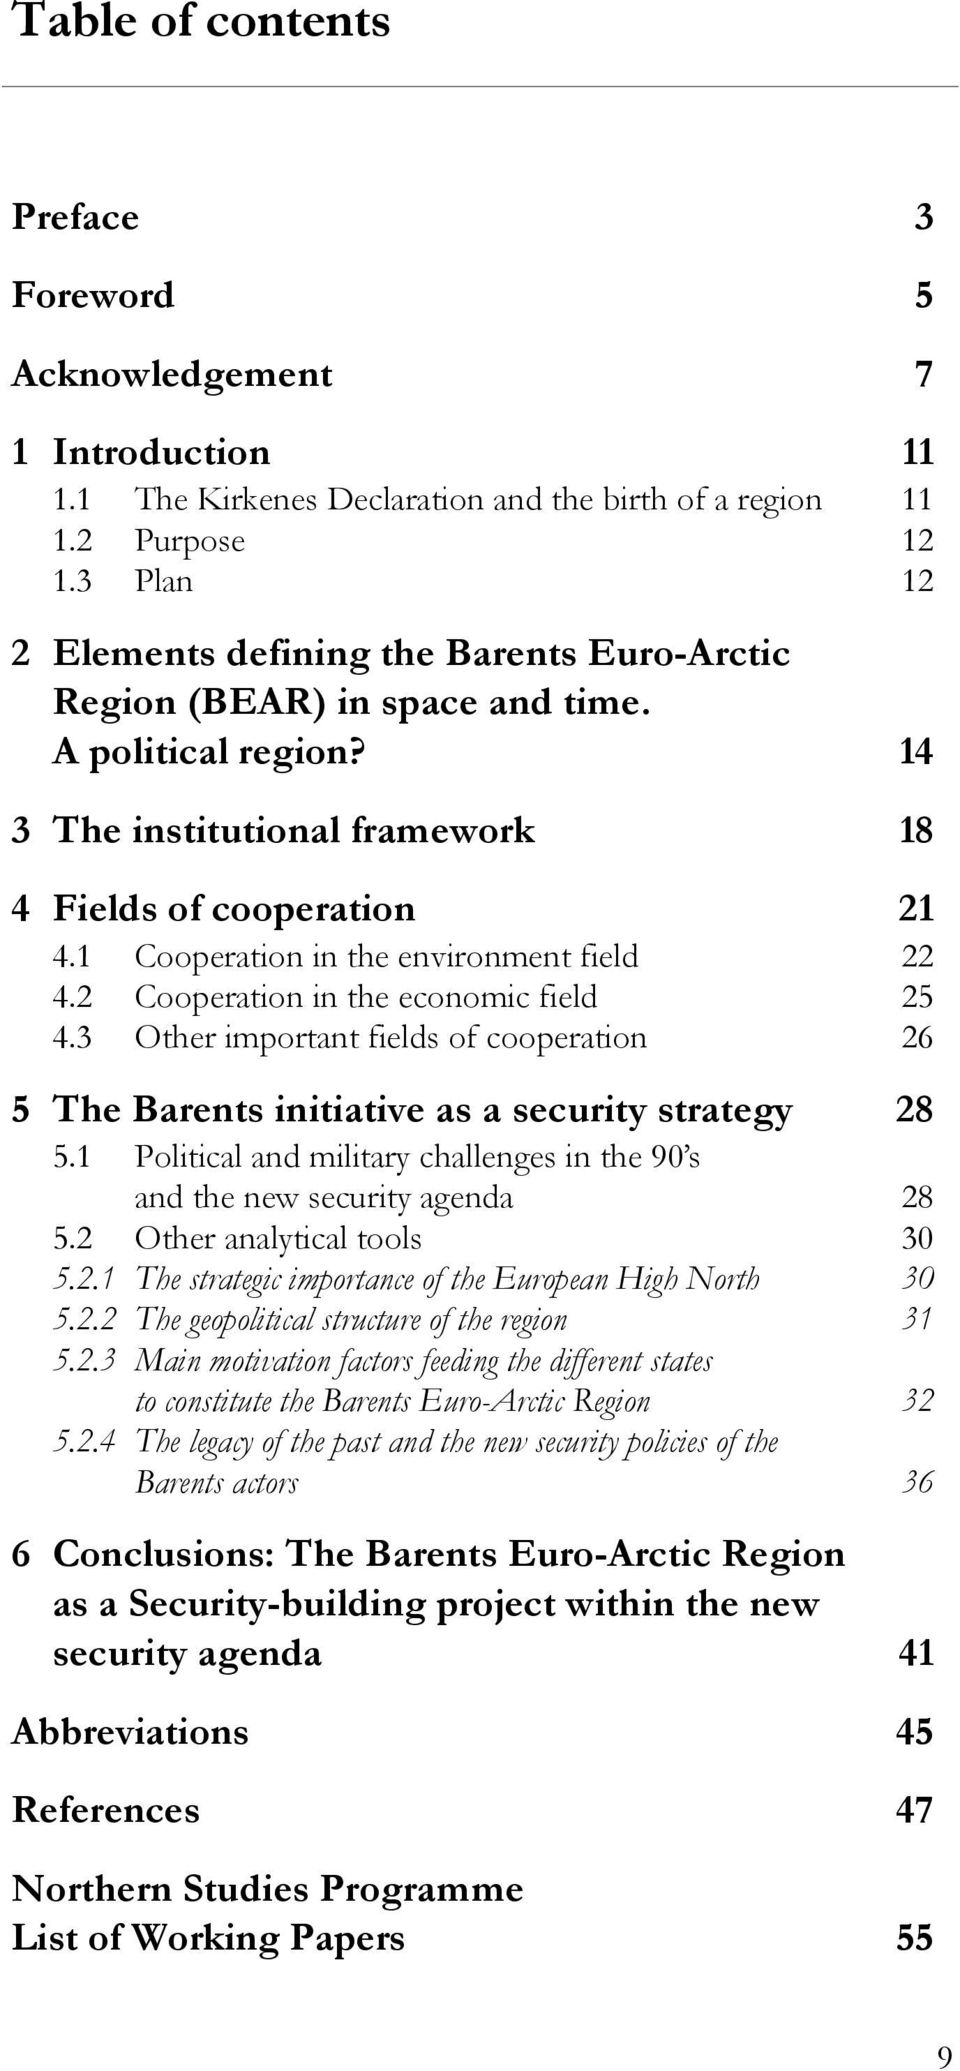 1 Cooperation in the environment field 22 4.2 Cooperation in the economic field 25 4.3 Other important fields of cooperation 26 5 The Barents initiative as a security strategy 28 5.